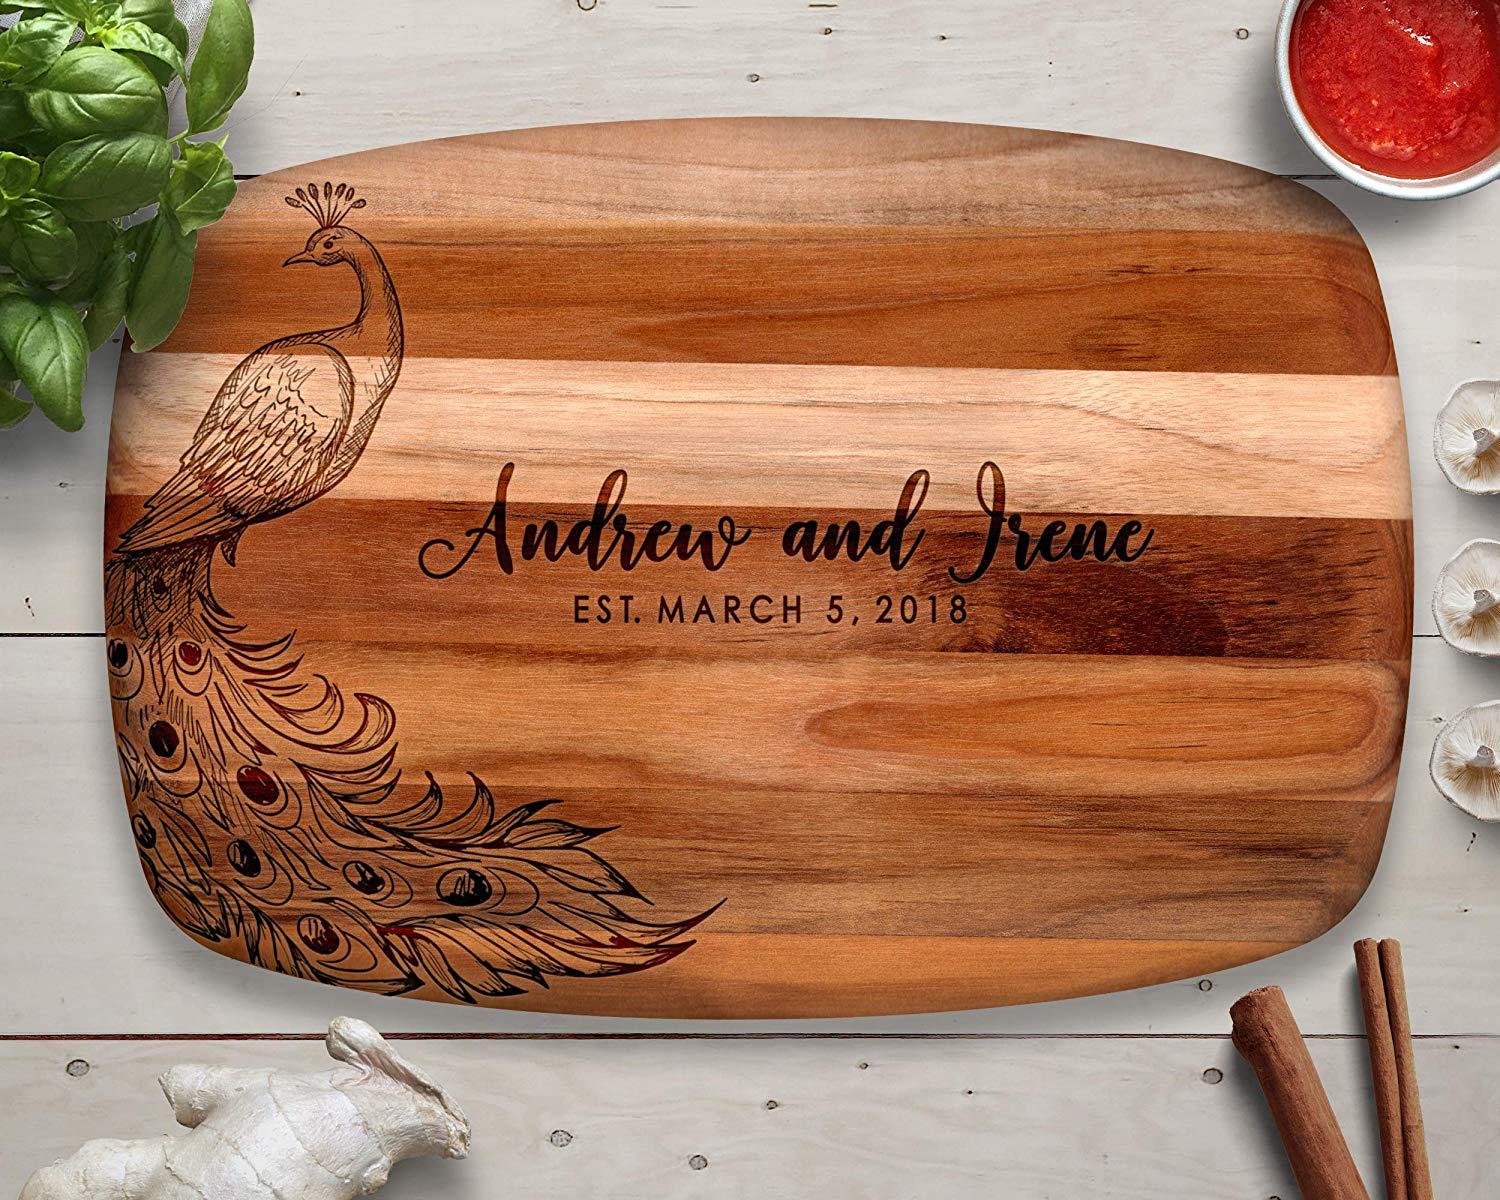 Peacock, Peacock Wedding, Personalized Cutting Board, Teak Cutting Board, Peacock Decor, Custom Cutting Board, Wood Cutting Board, Teak Wood, Personalized Gift, Gift for Her, Gift for Wife, Mom Gifts